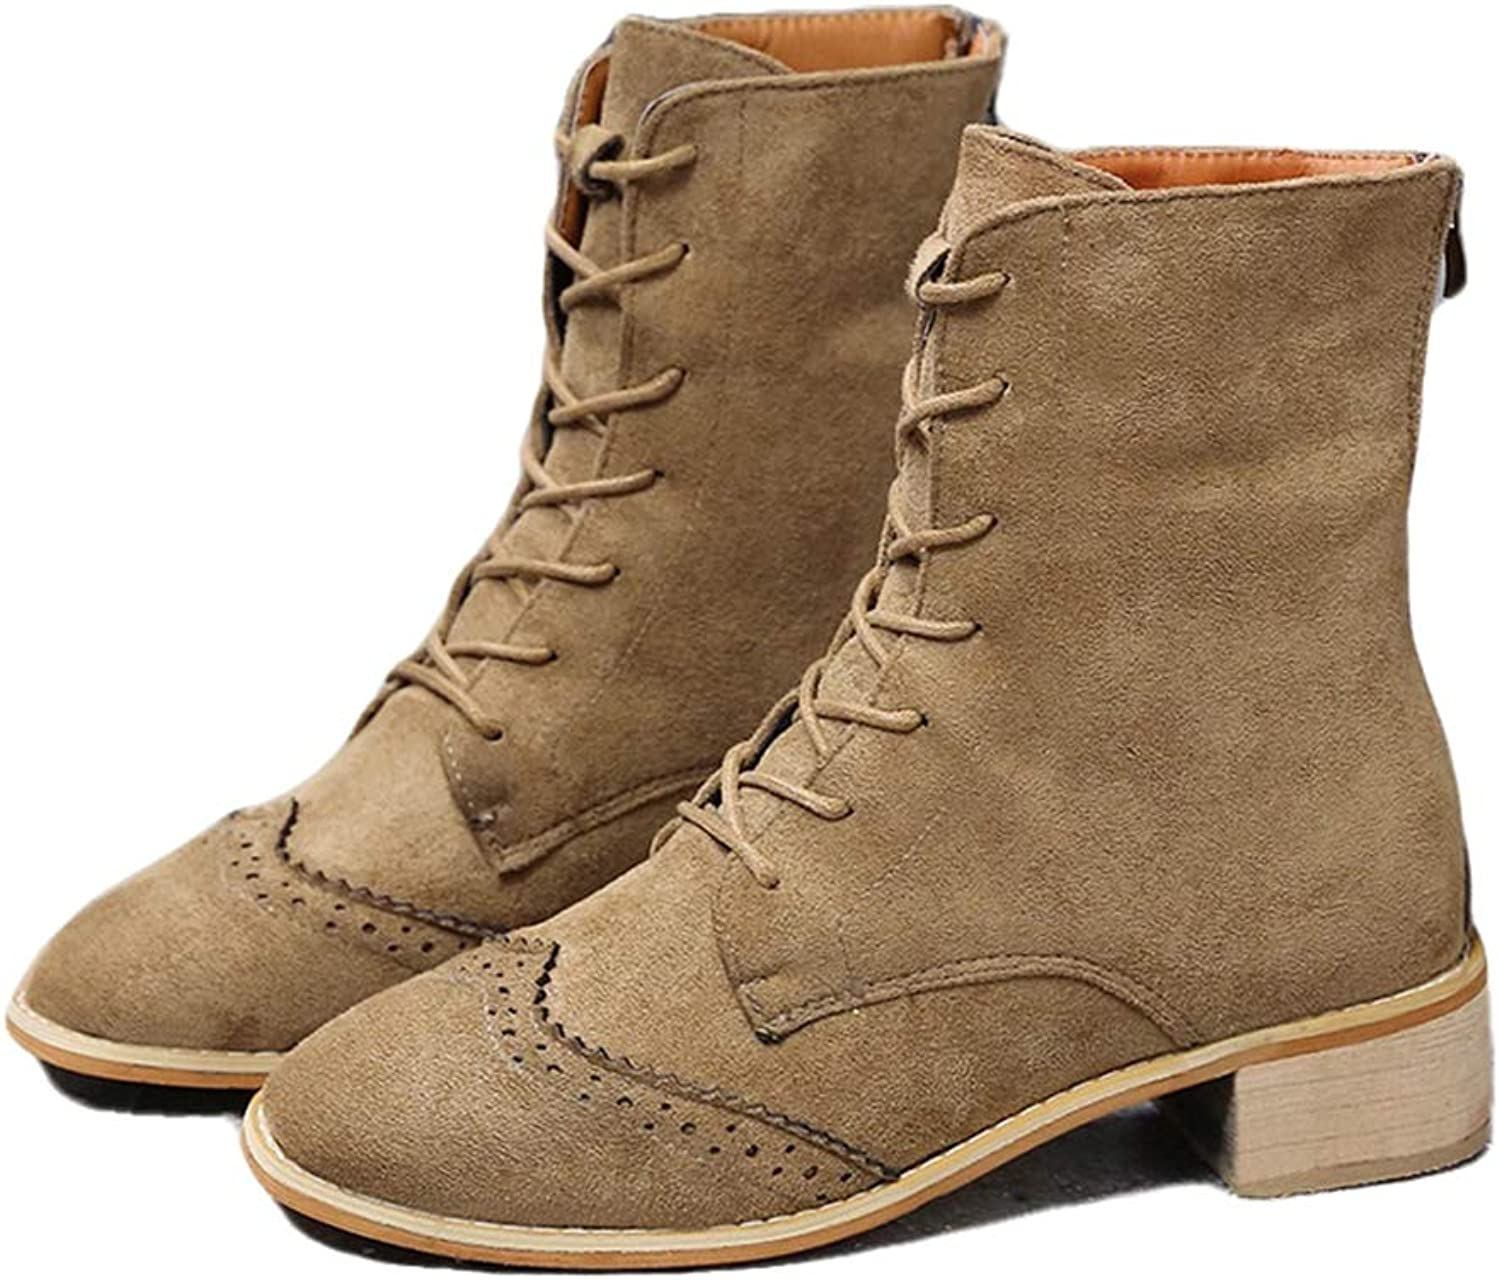 York Zhu Women Boots - Lace Up Faux Leather Women Combat Booties Motorcycle